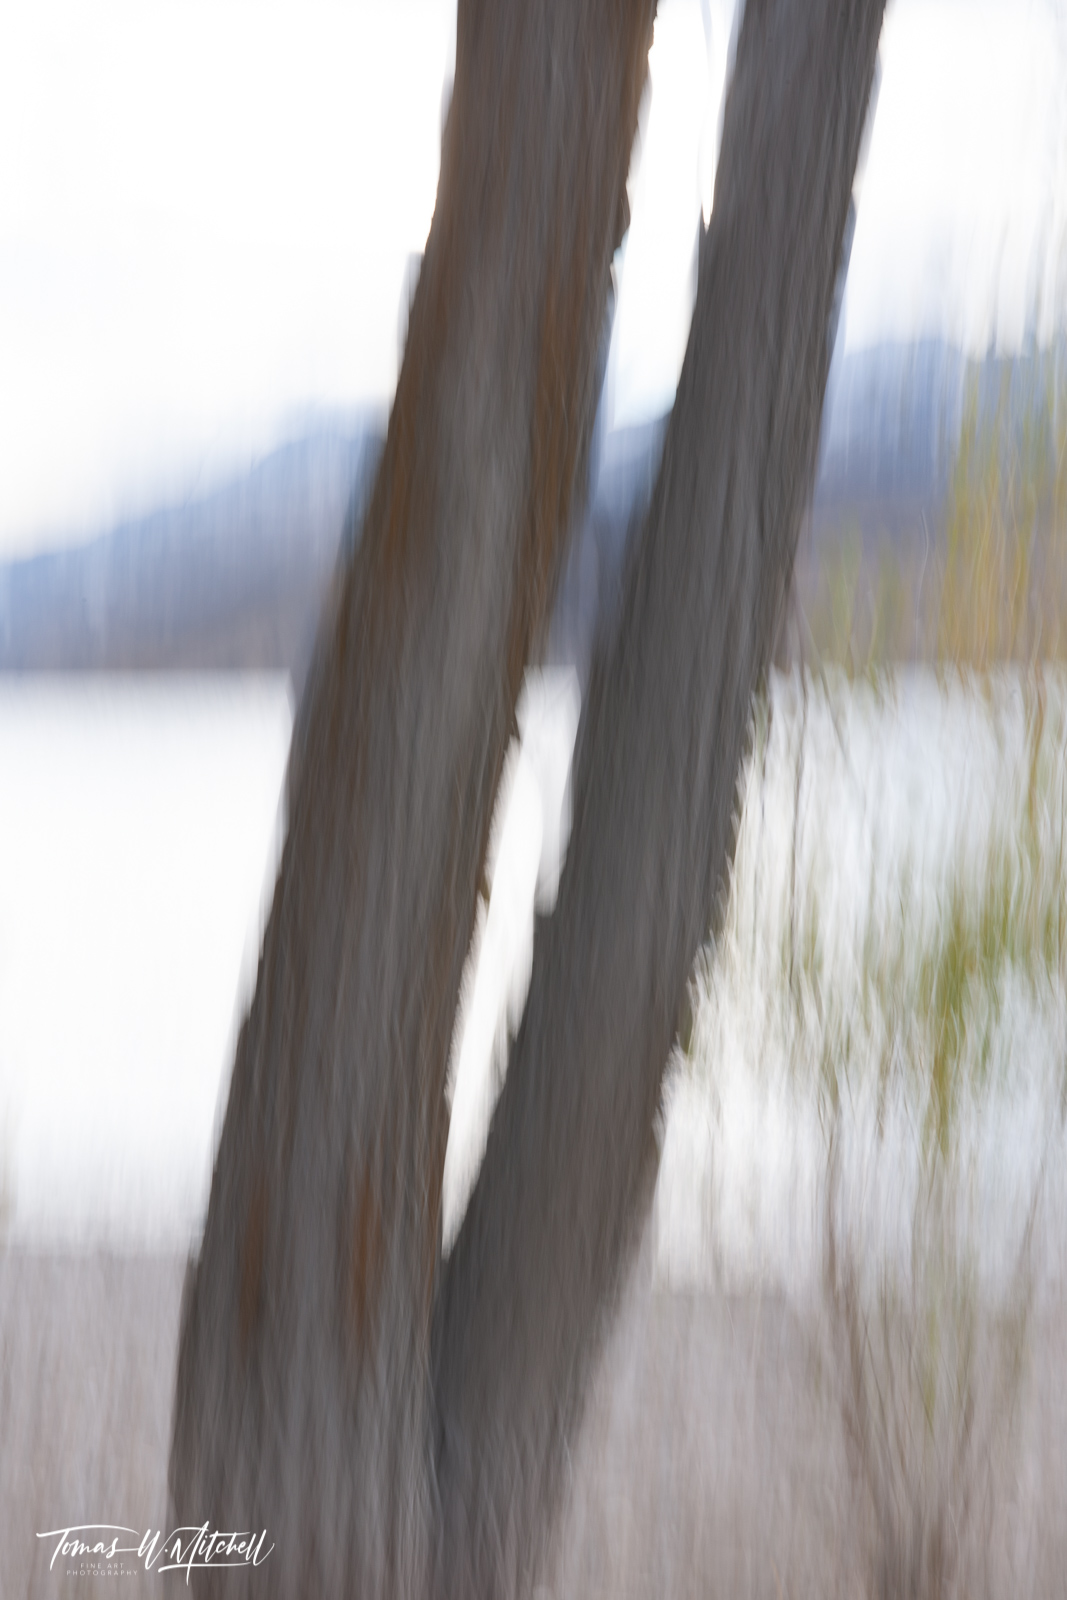 limited edition, fine art, prints, deer creek reservoir, utah, photograph, tree trunks, branches, yellow, brown, layers, shoreline, water, mountains, photo